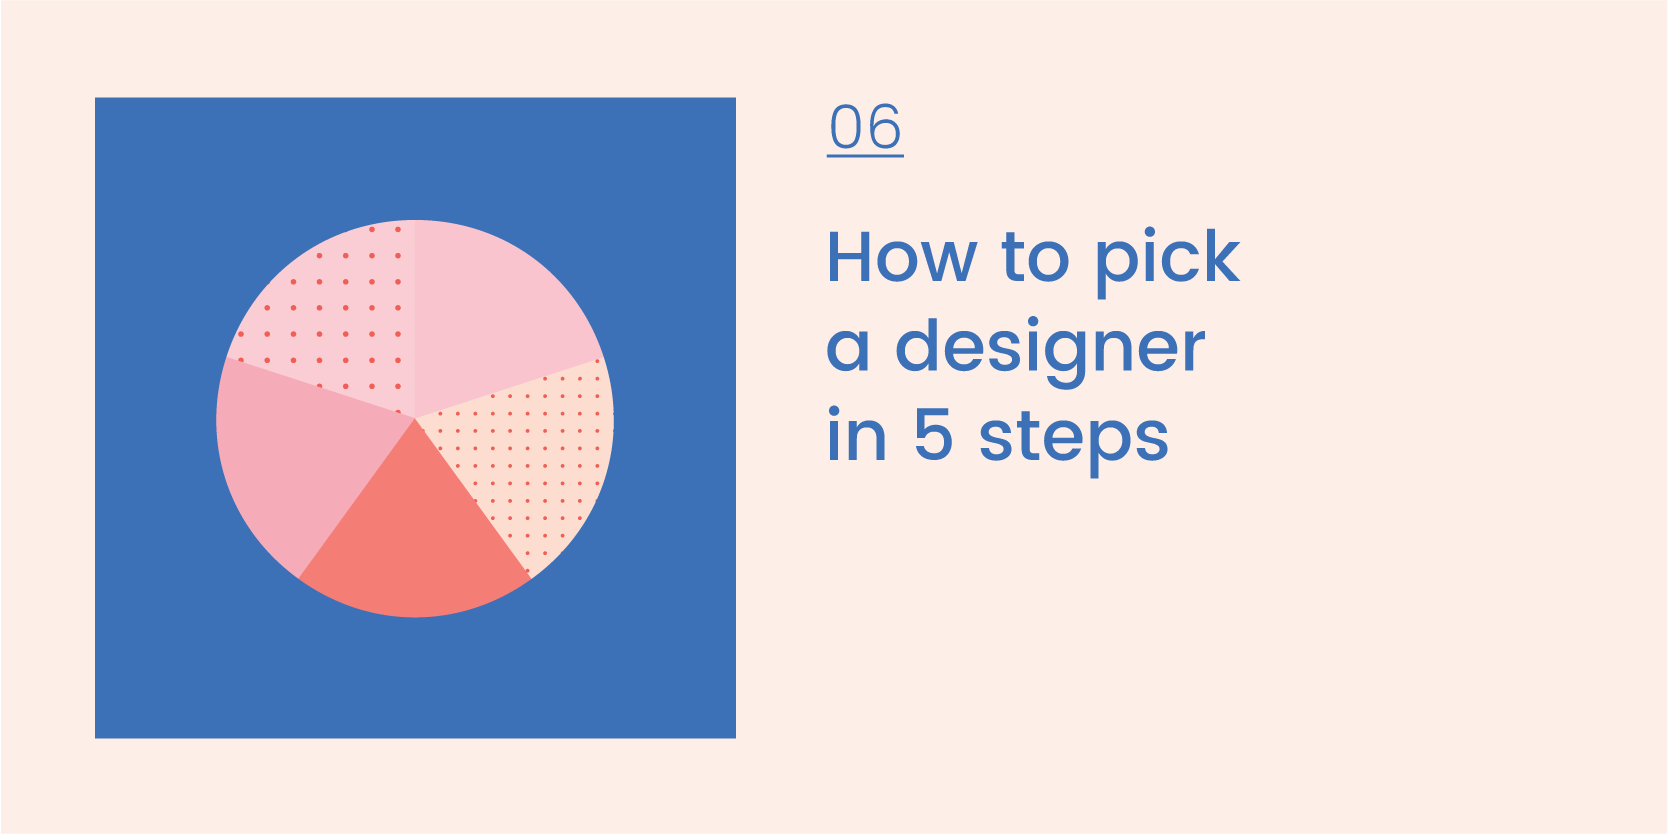 06 How to pick a designer-02.png